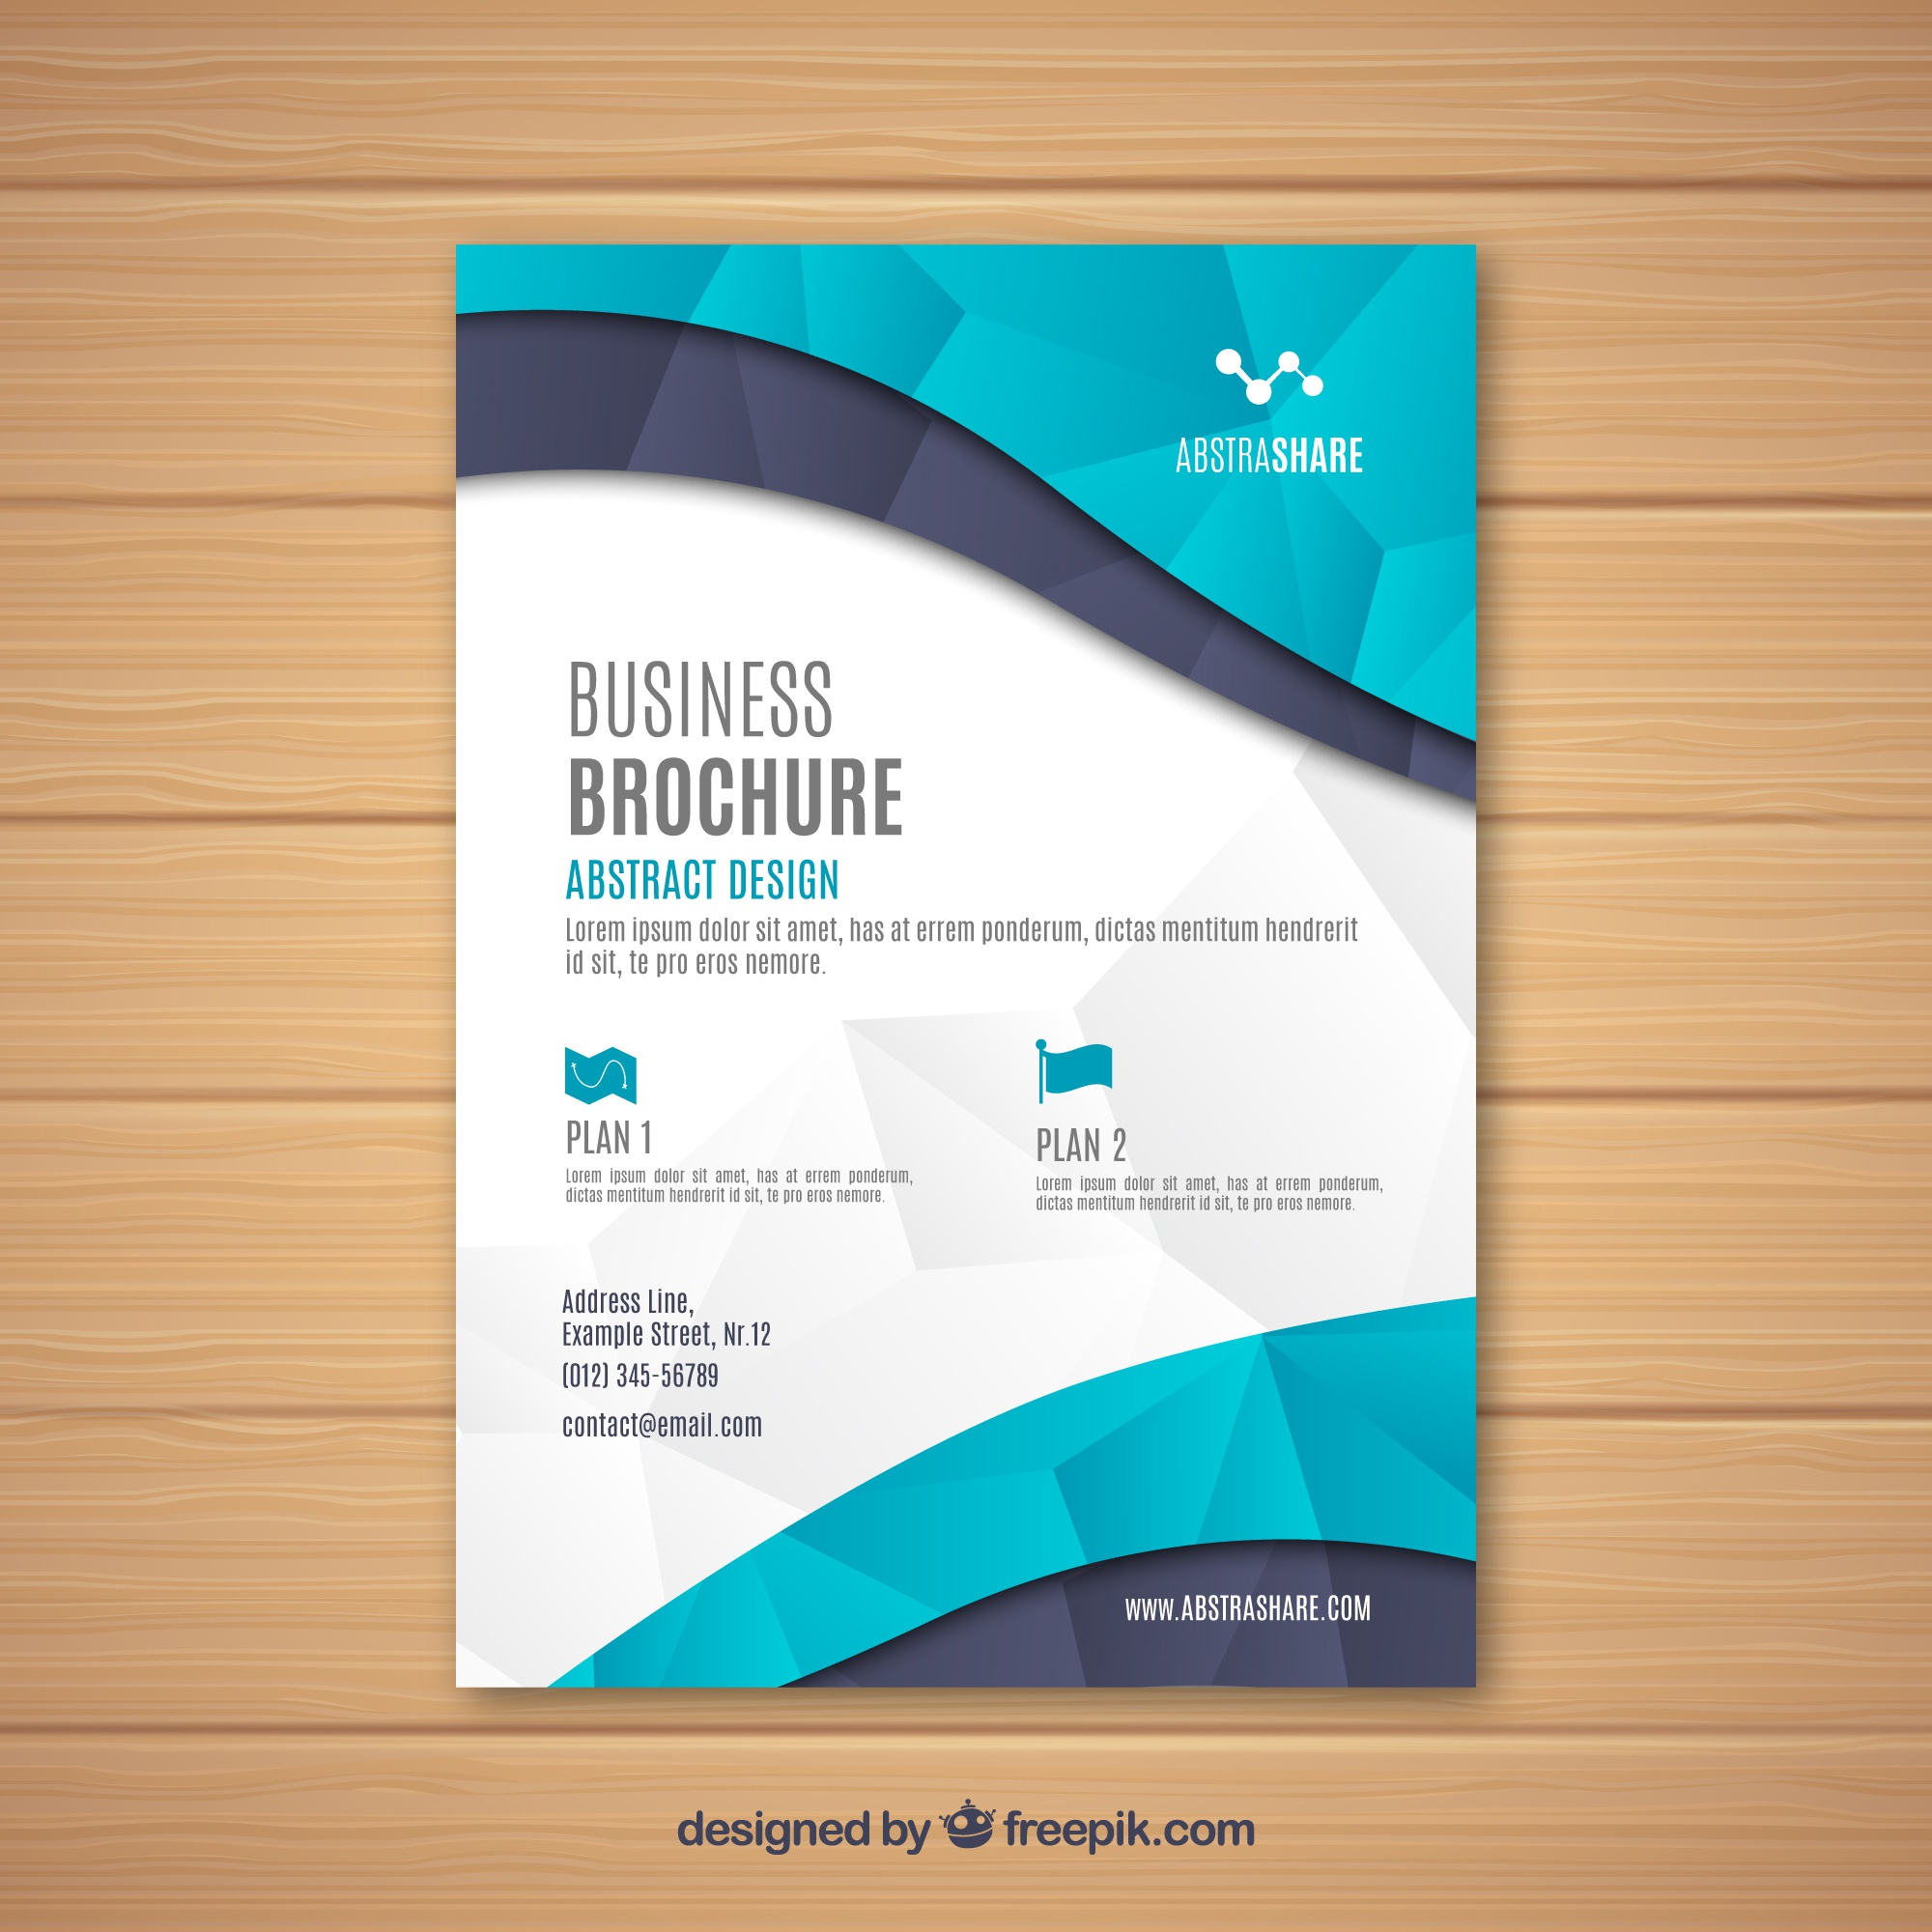 Business brochure with geometric and abstract figures